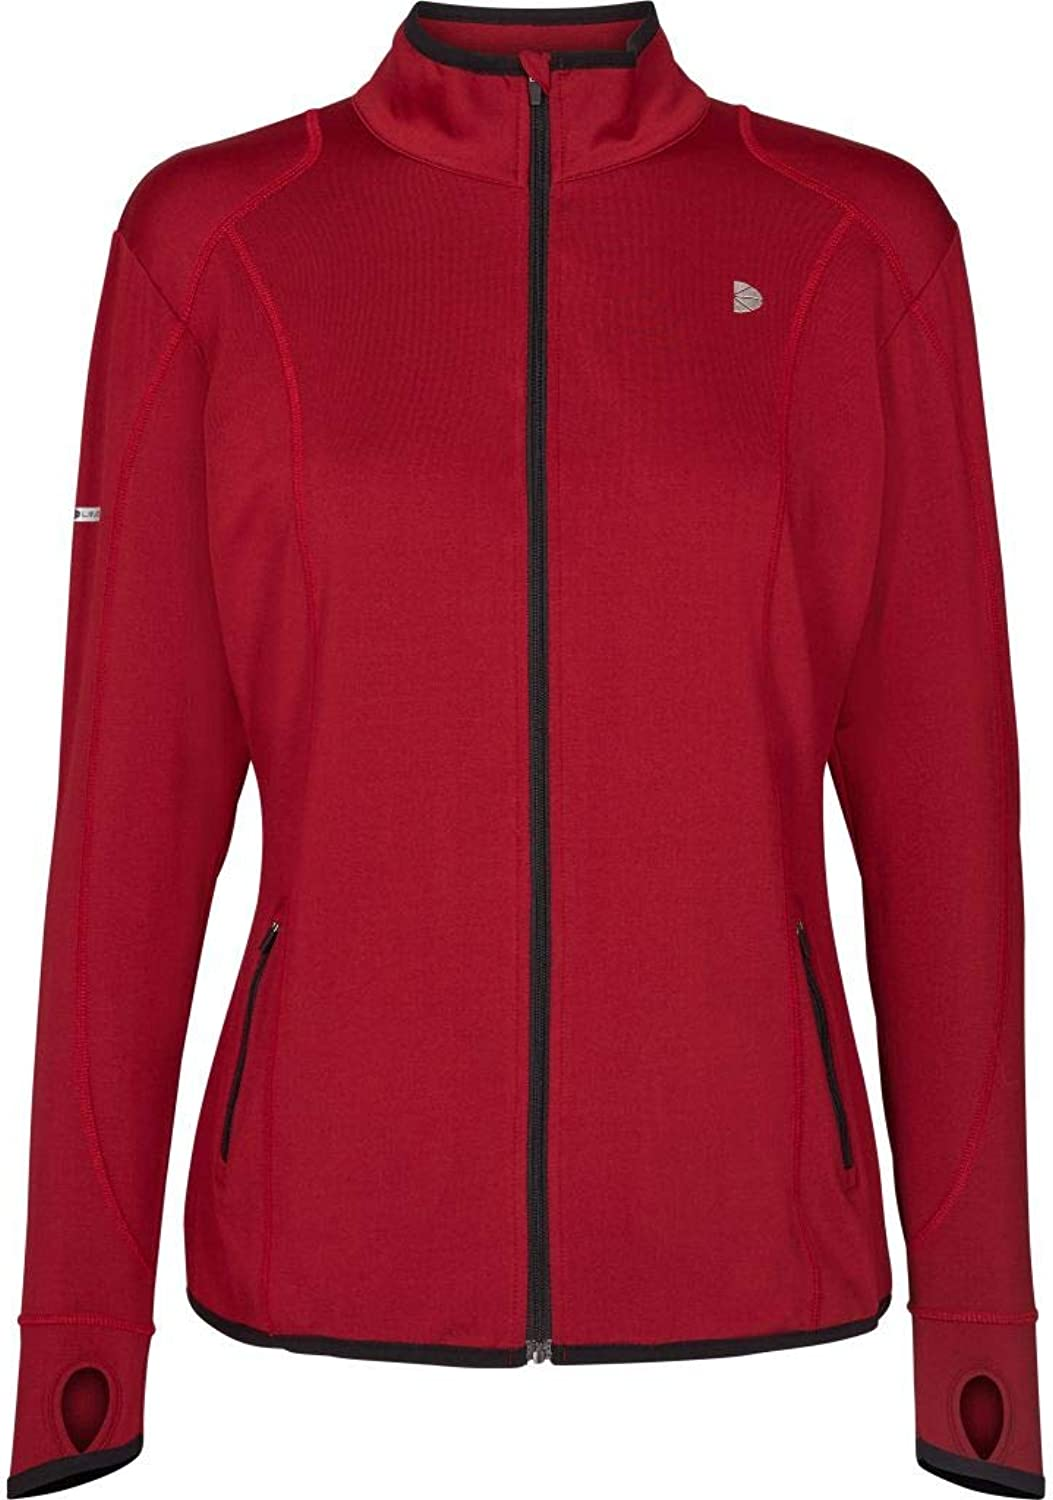 Pure Lime Womens Athletic Jacket